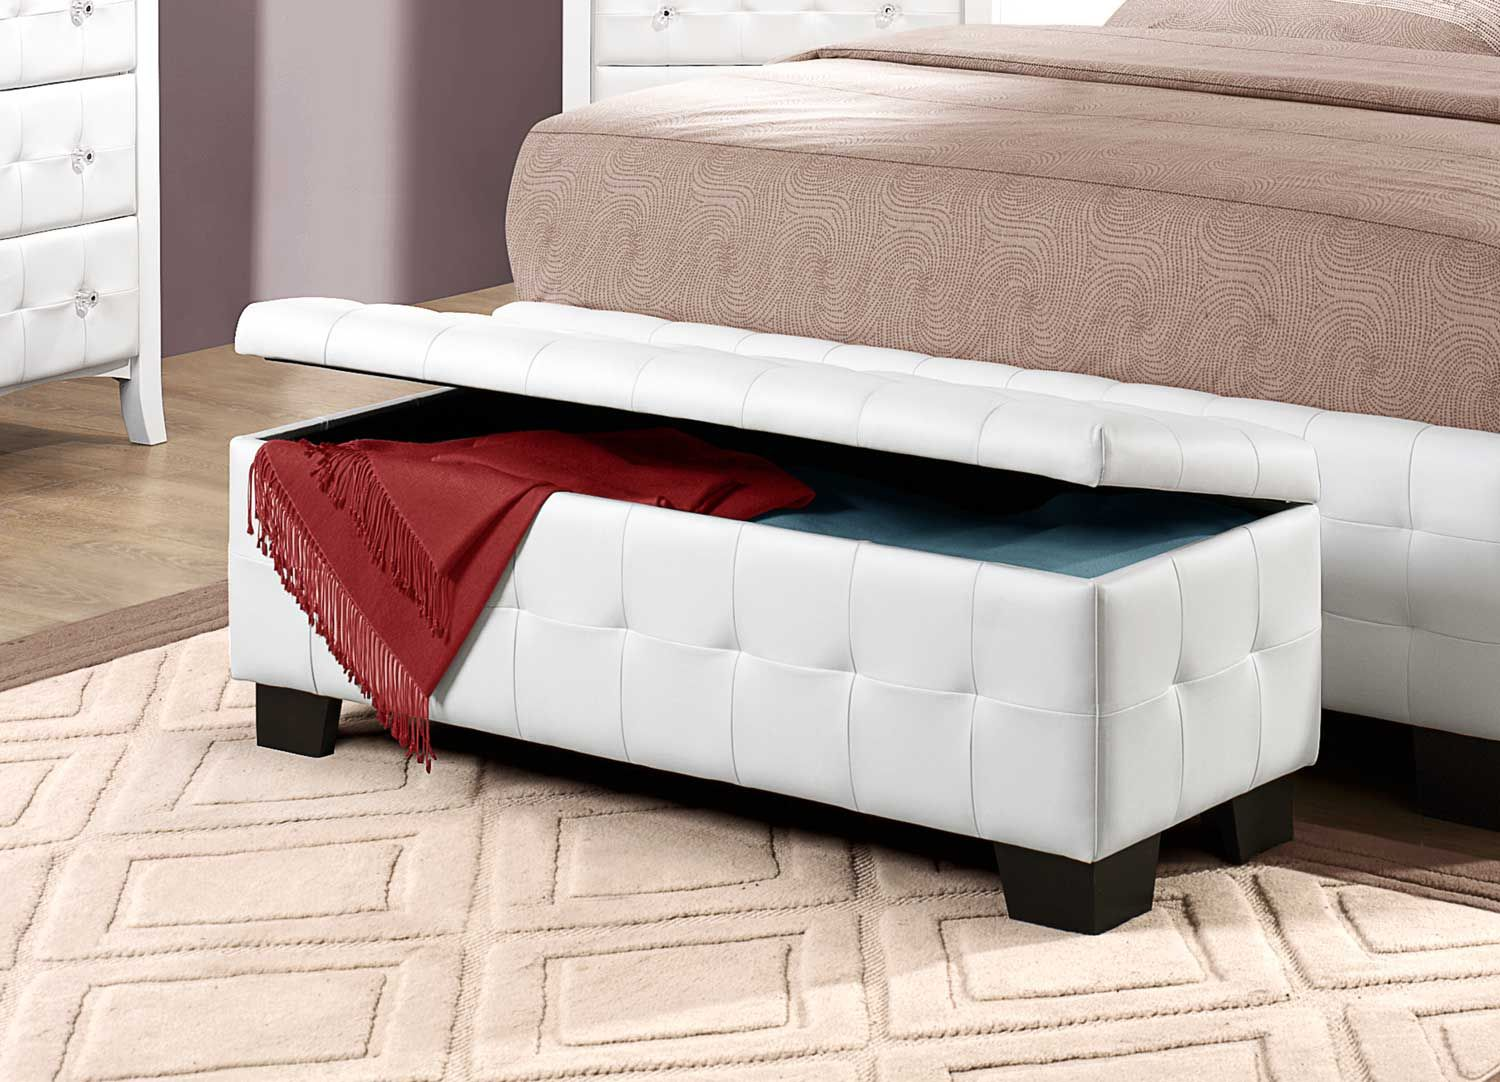 likeness of upholstered bench with storage  furniture  pinterest  - likeness of upholstered bench with storage